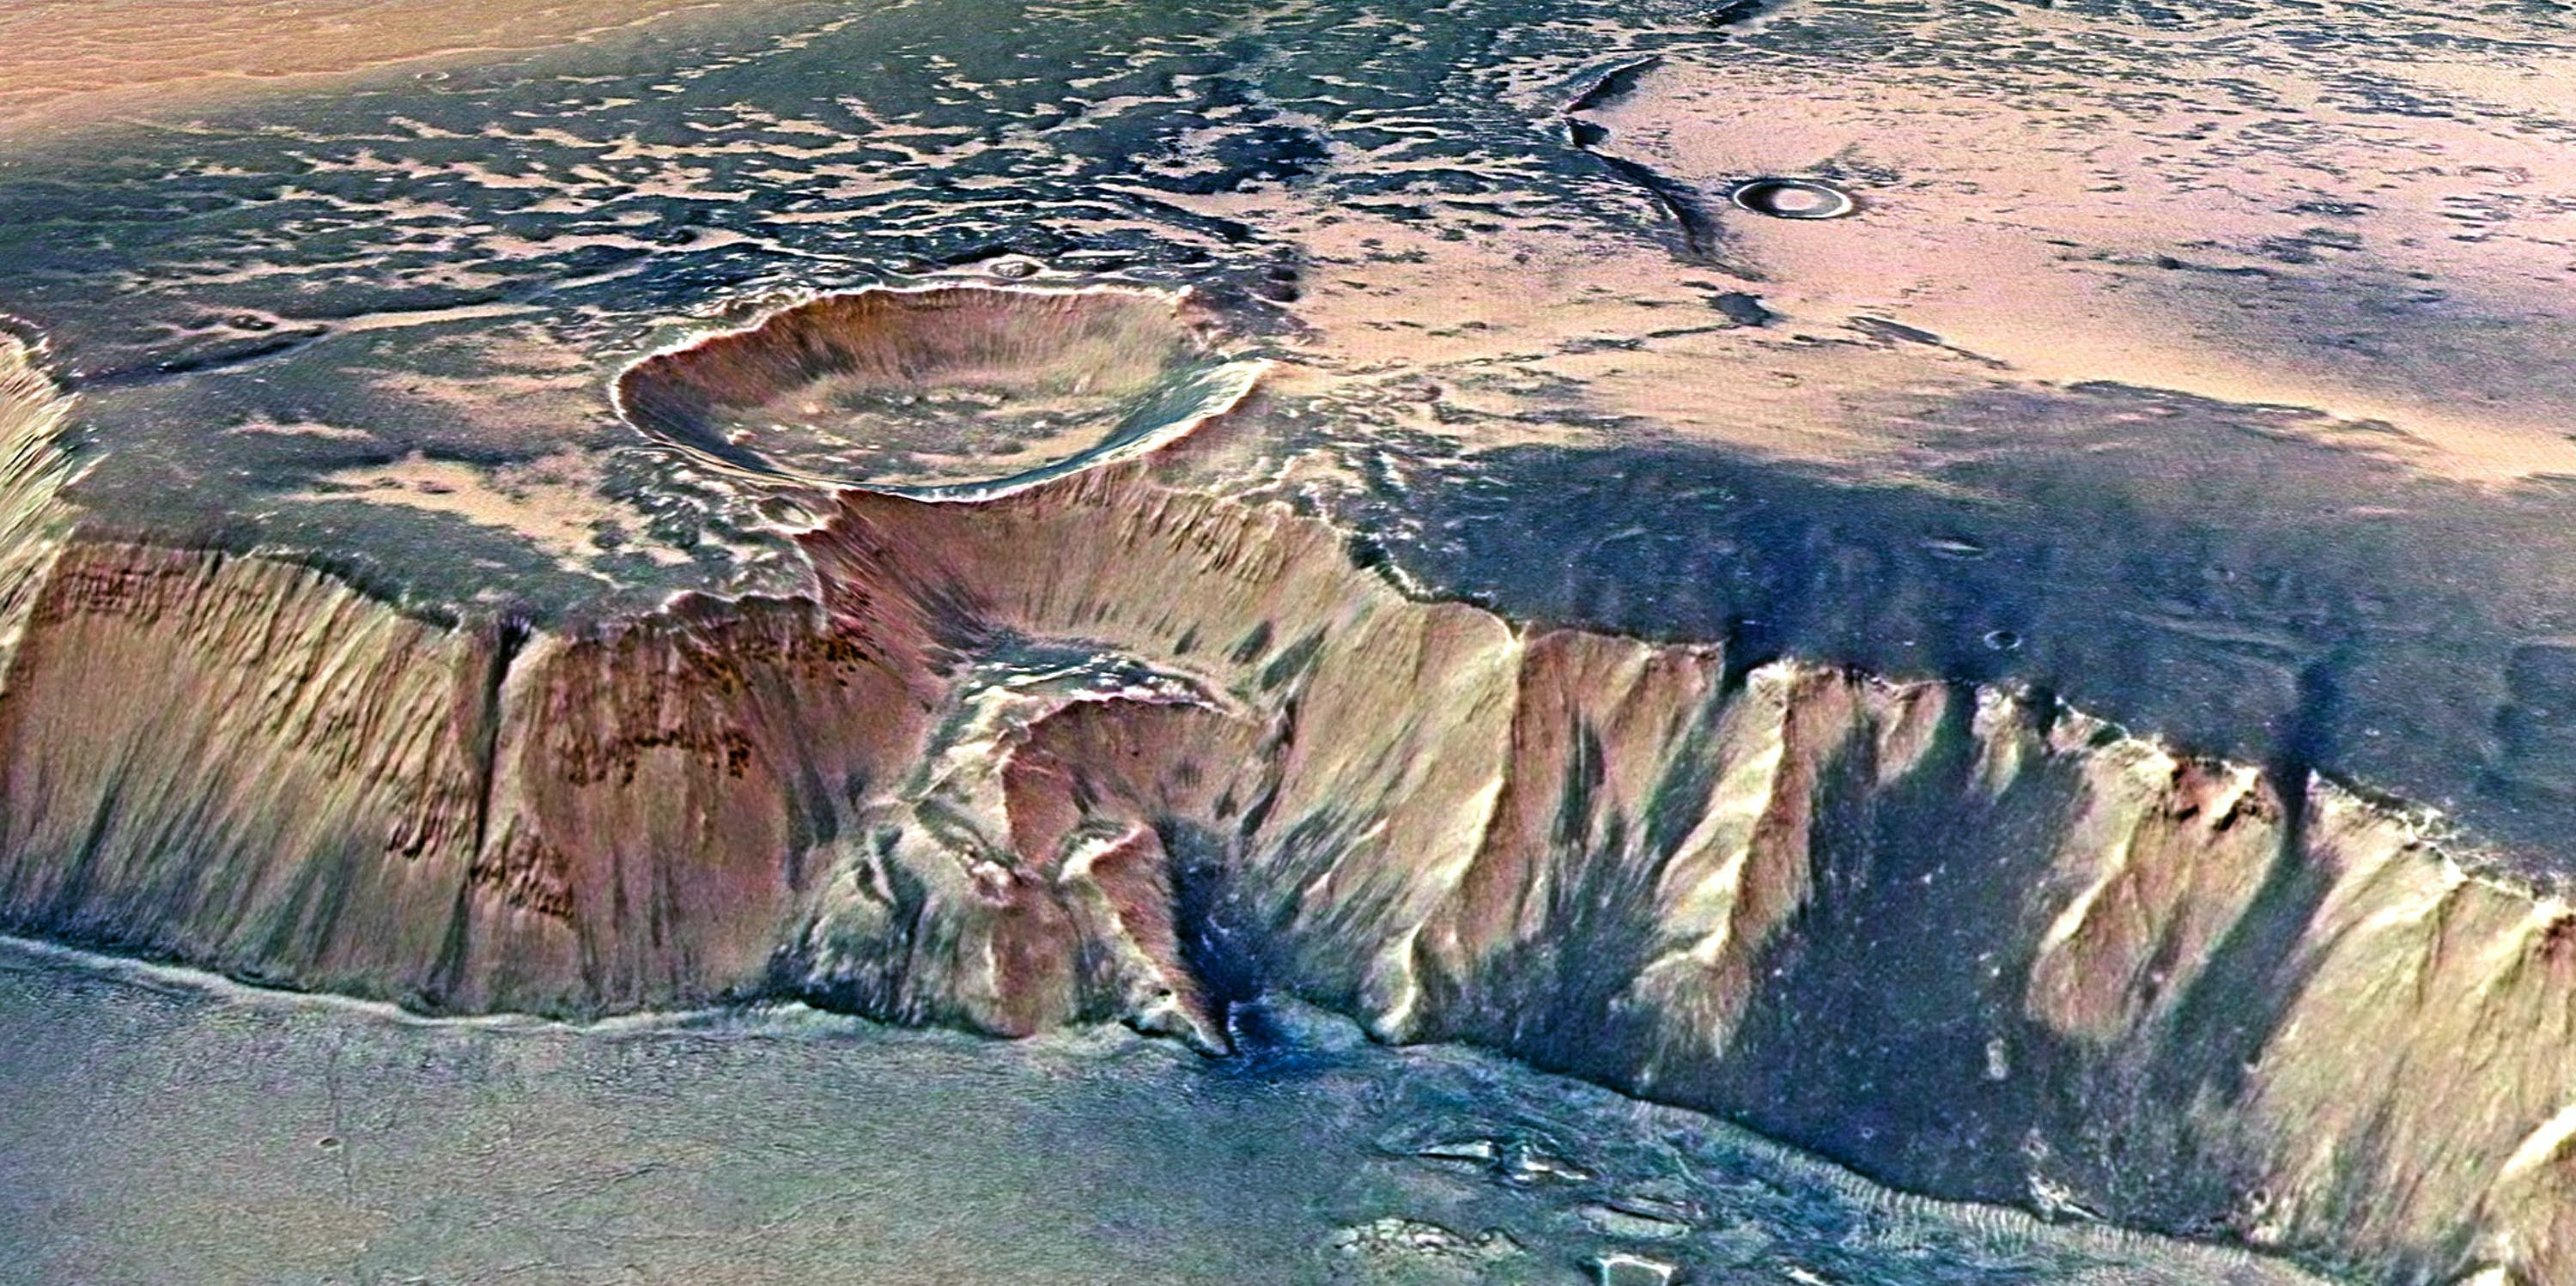 The Echus Chasma, one of the largest water source regions on Mars, is pictured from ESA's Mars Express.